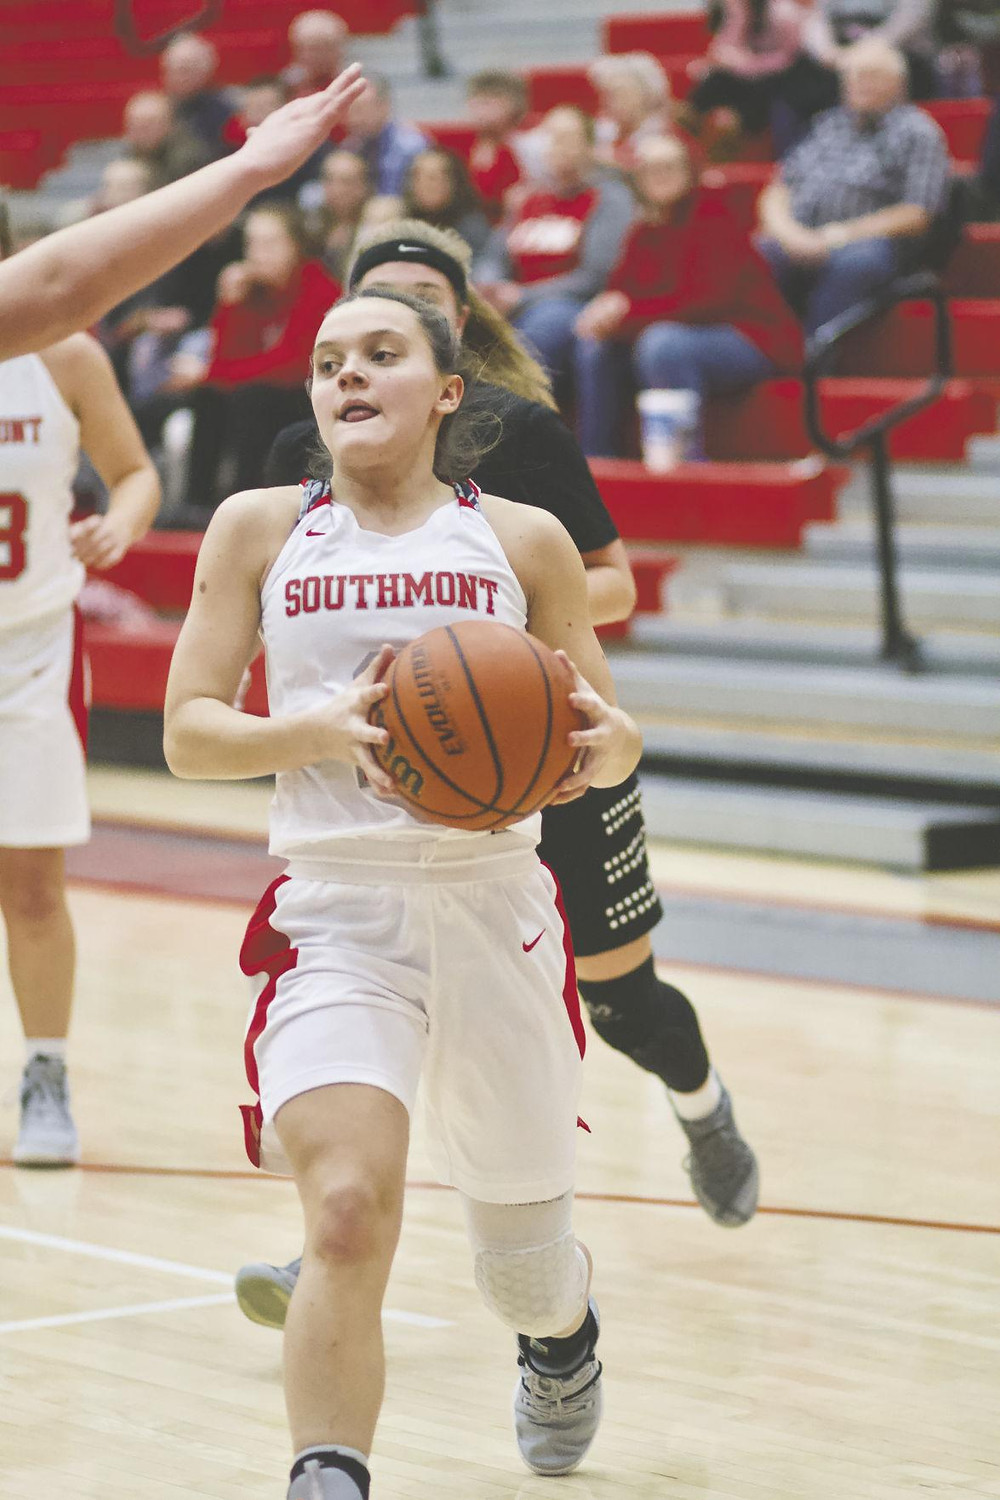 Southmont senior Hailey France looks to score for the Mounties.